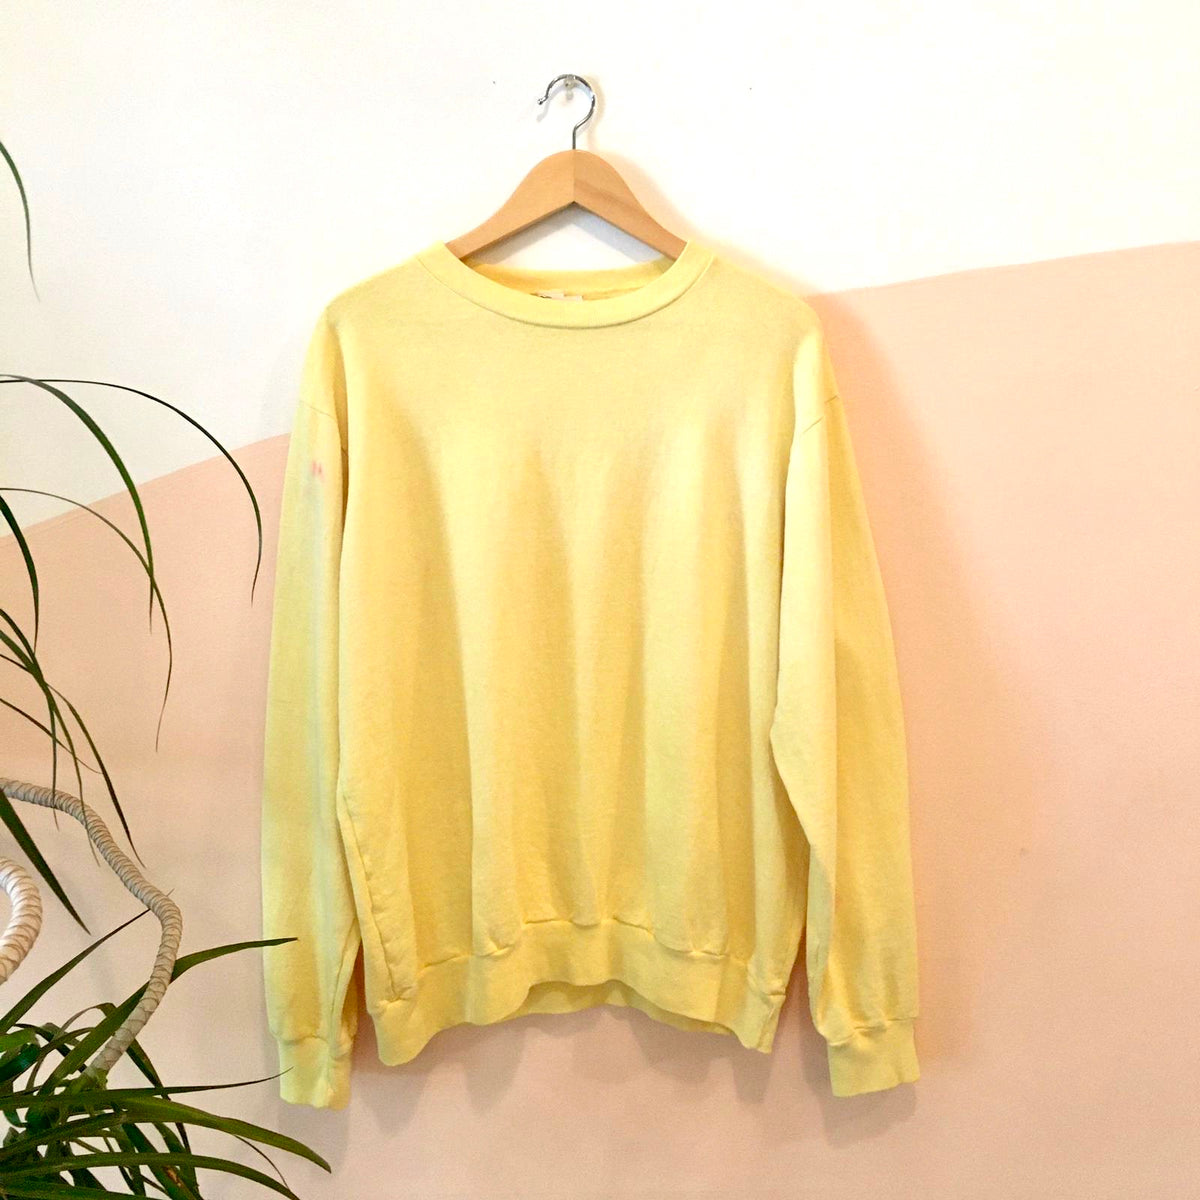 Tie-dye Crewneck Sweatshirt - Lemon Yellow